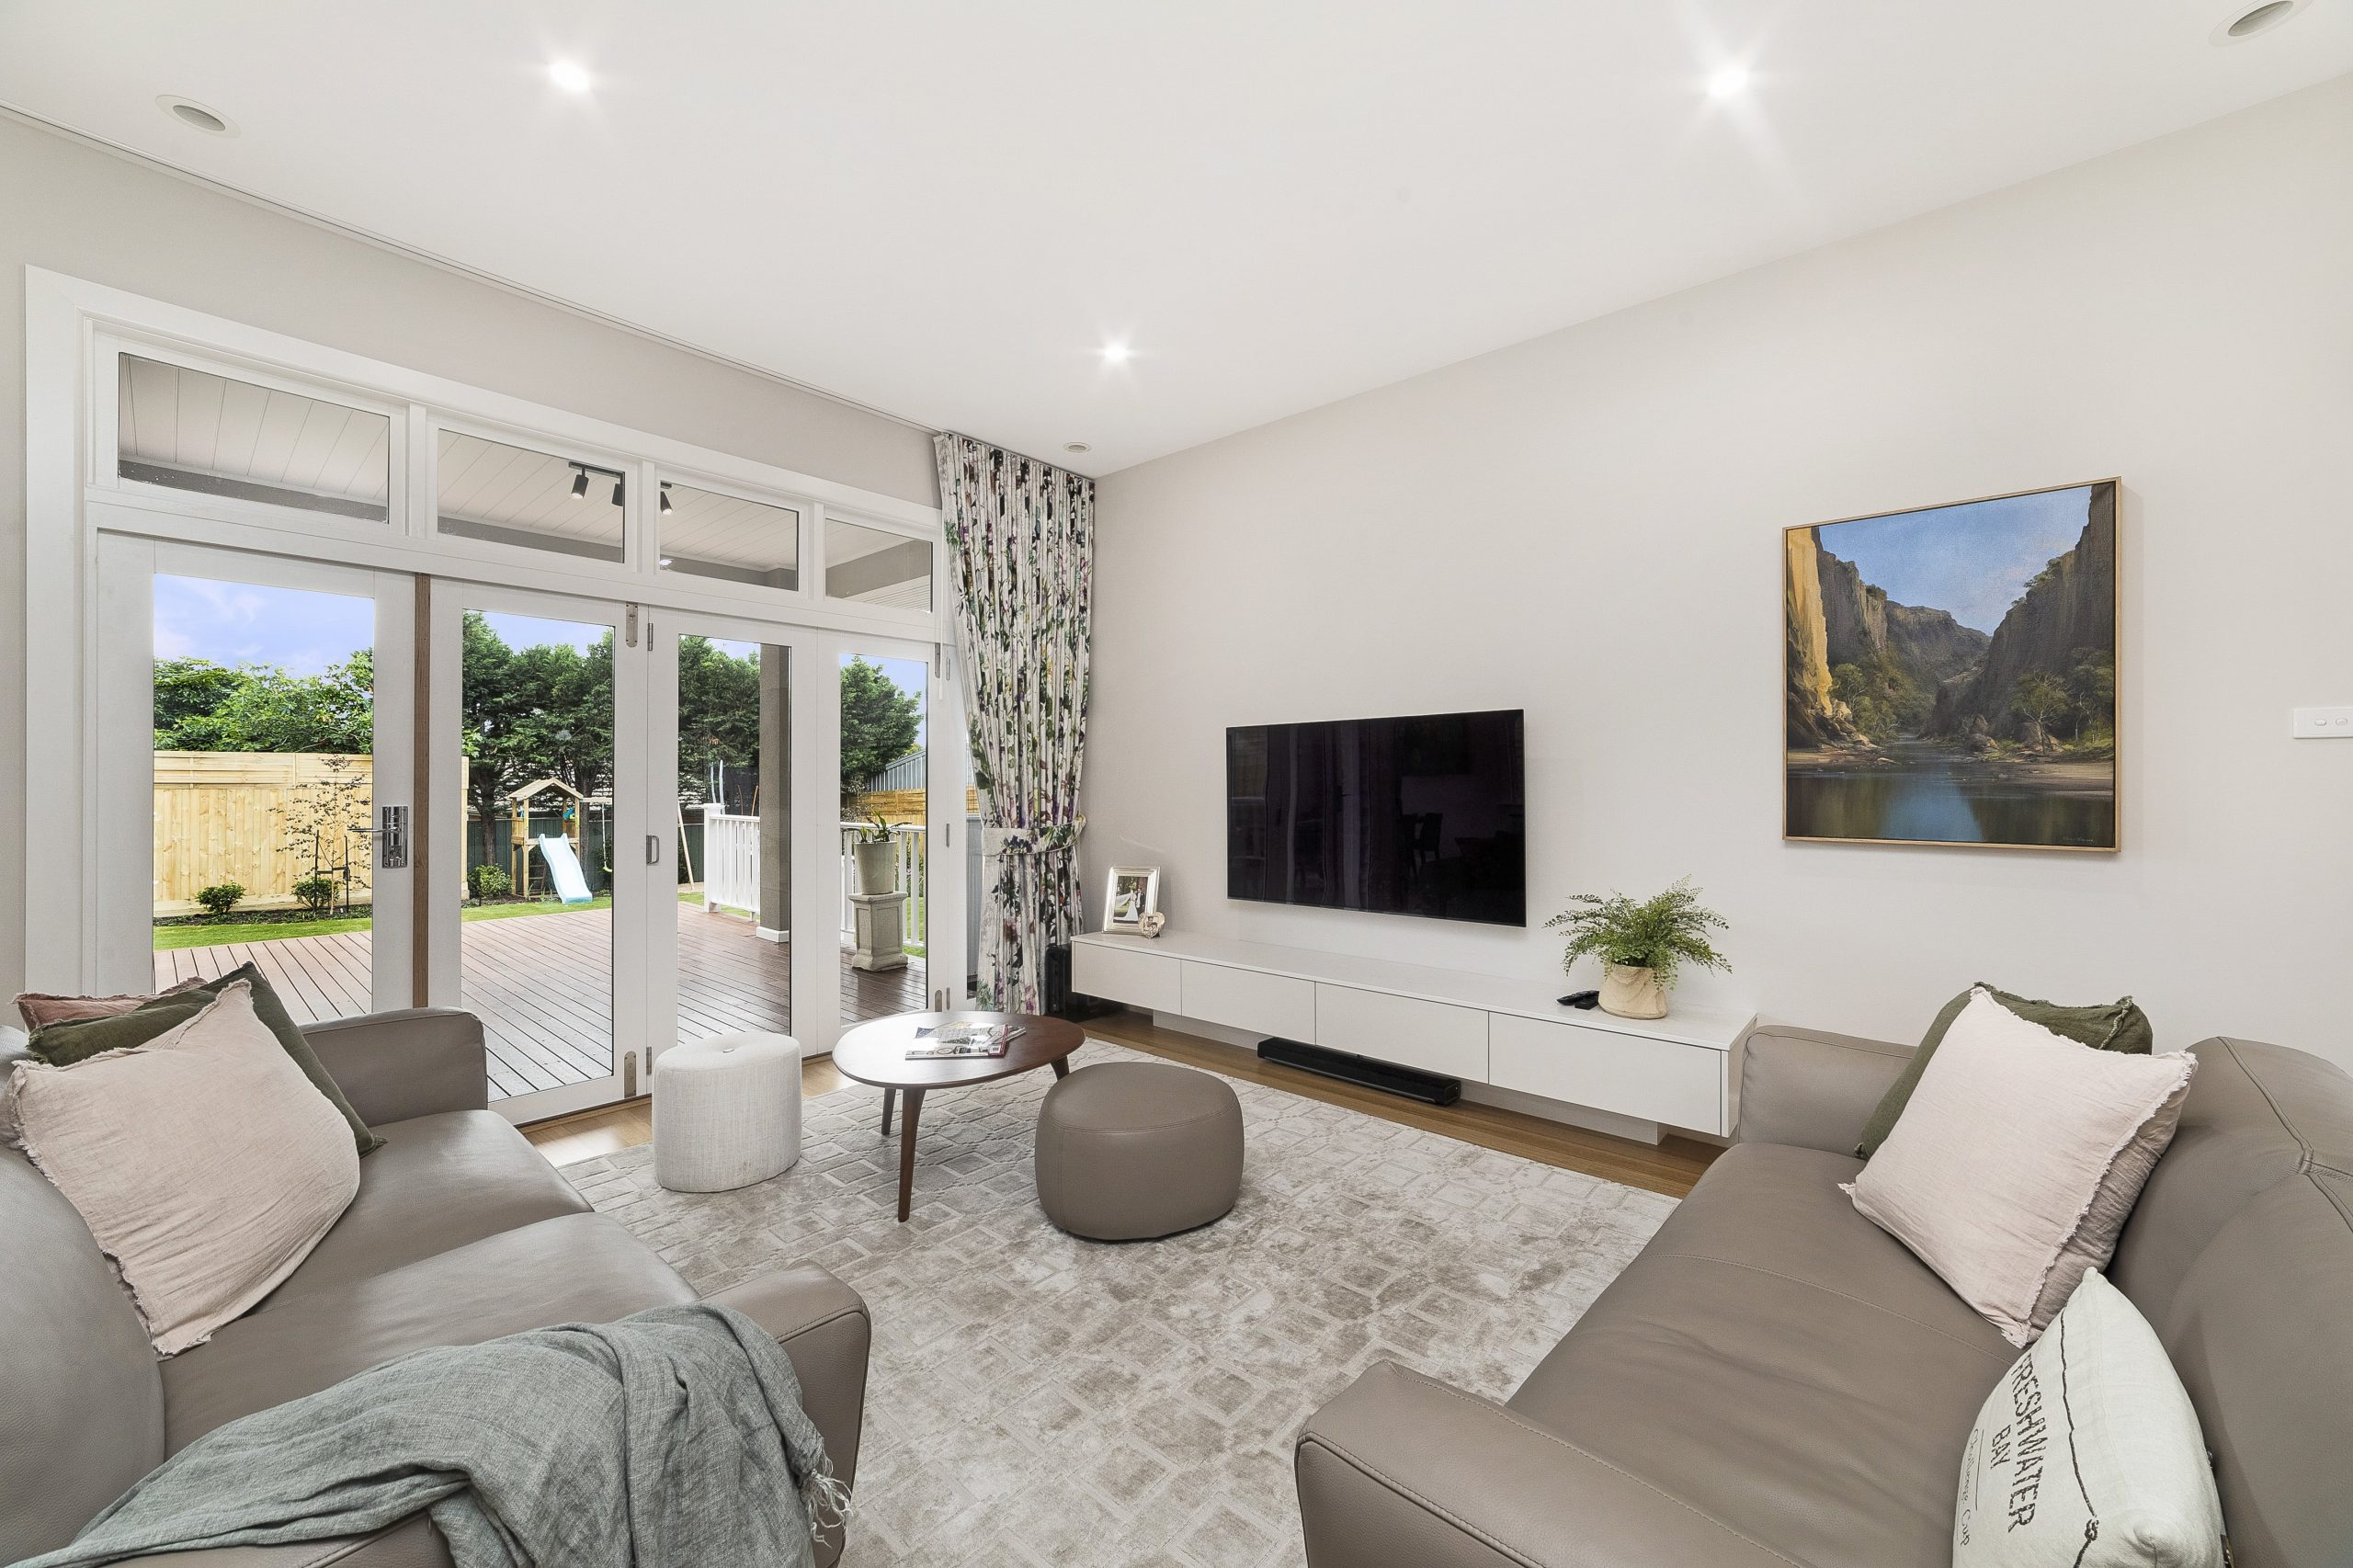 What Features Add Most Value Home Renovation family room